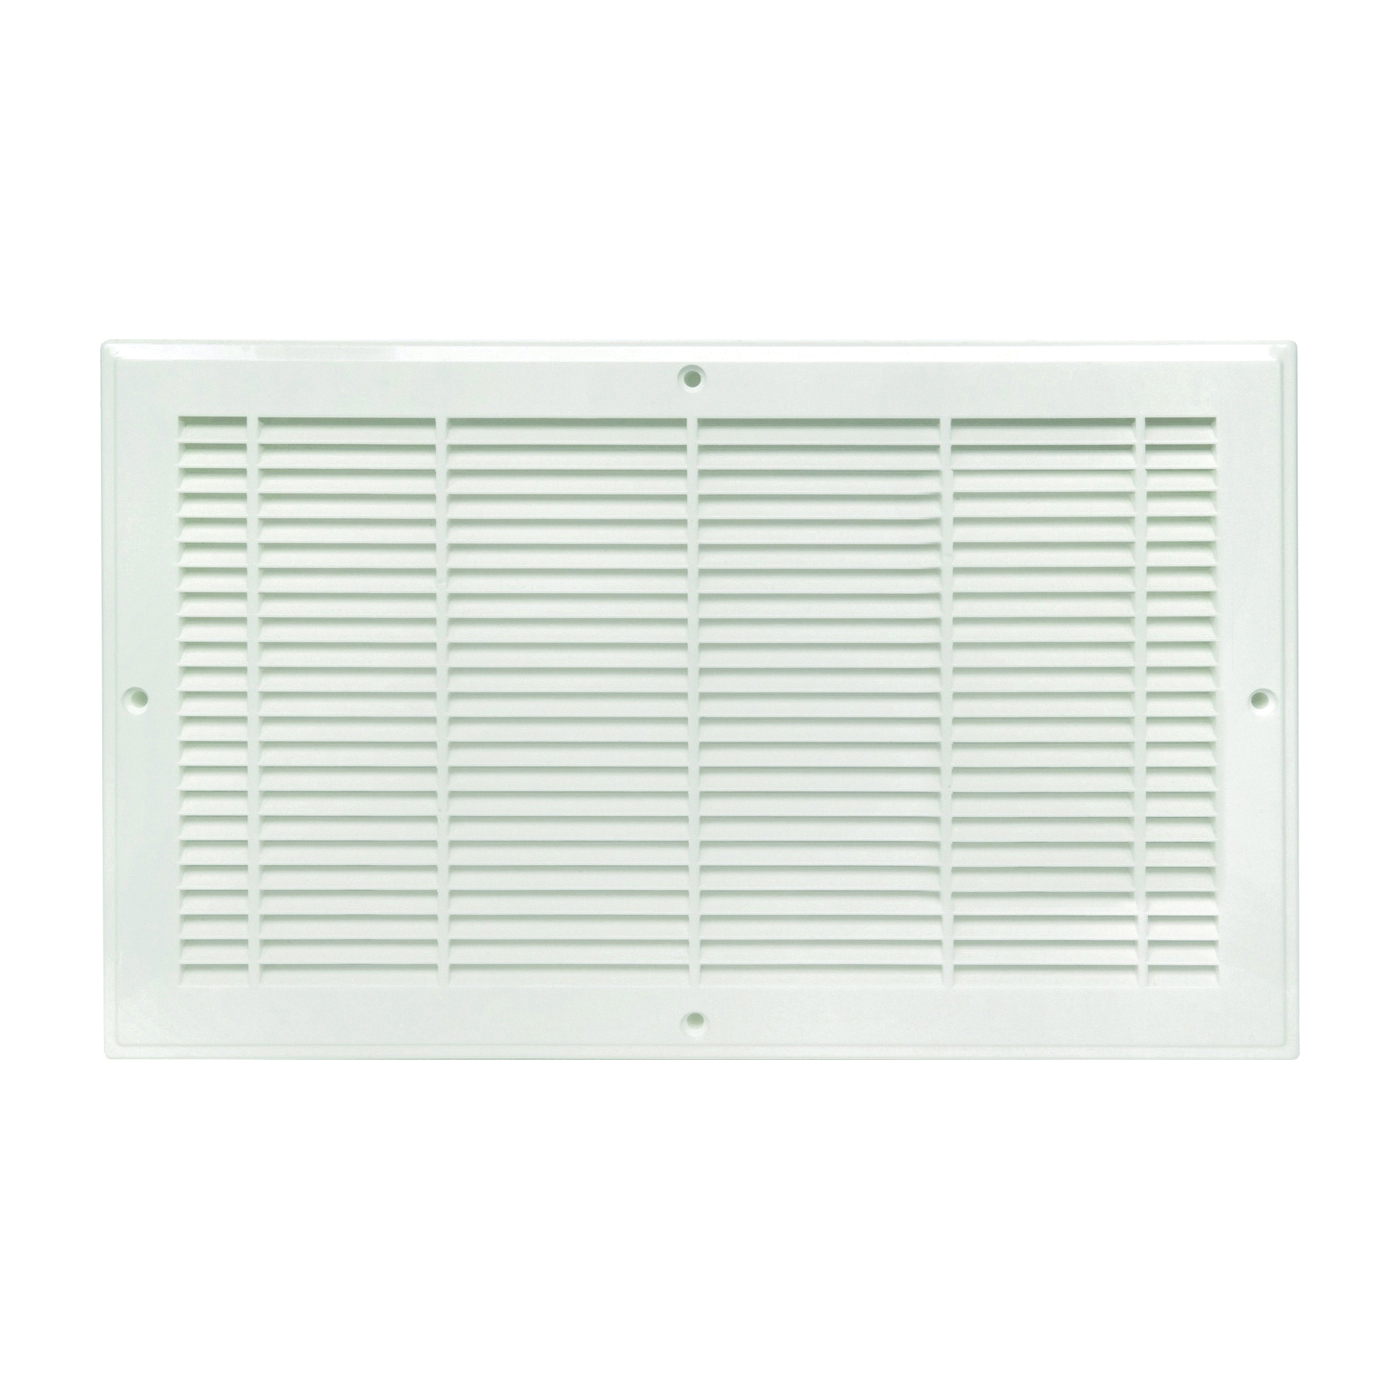 Picture of Imperial RG2298 Return Air Grille, 12-1/4 in L, 7-1/4 in W, Polystyrene, White